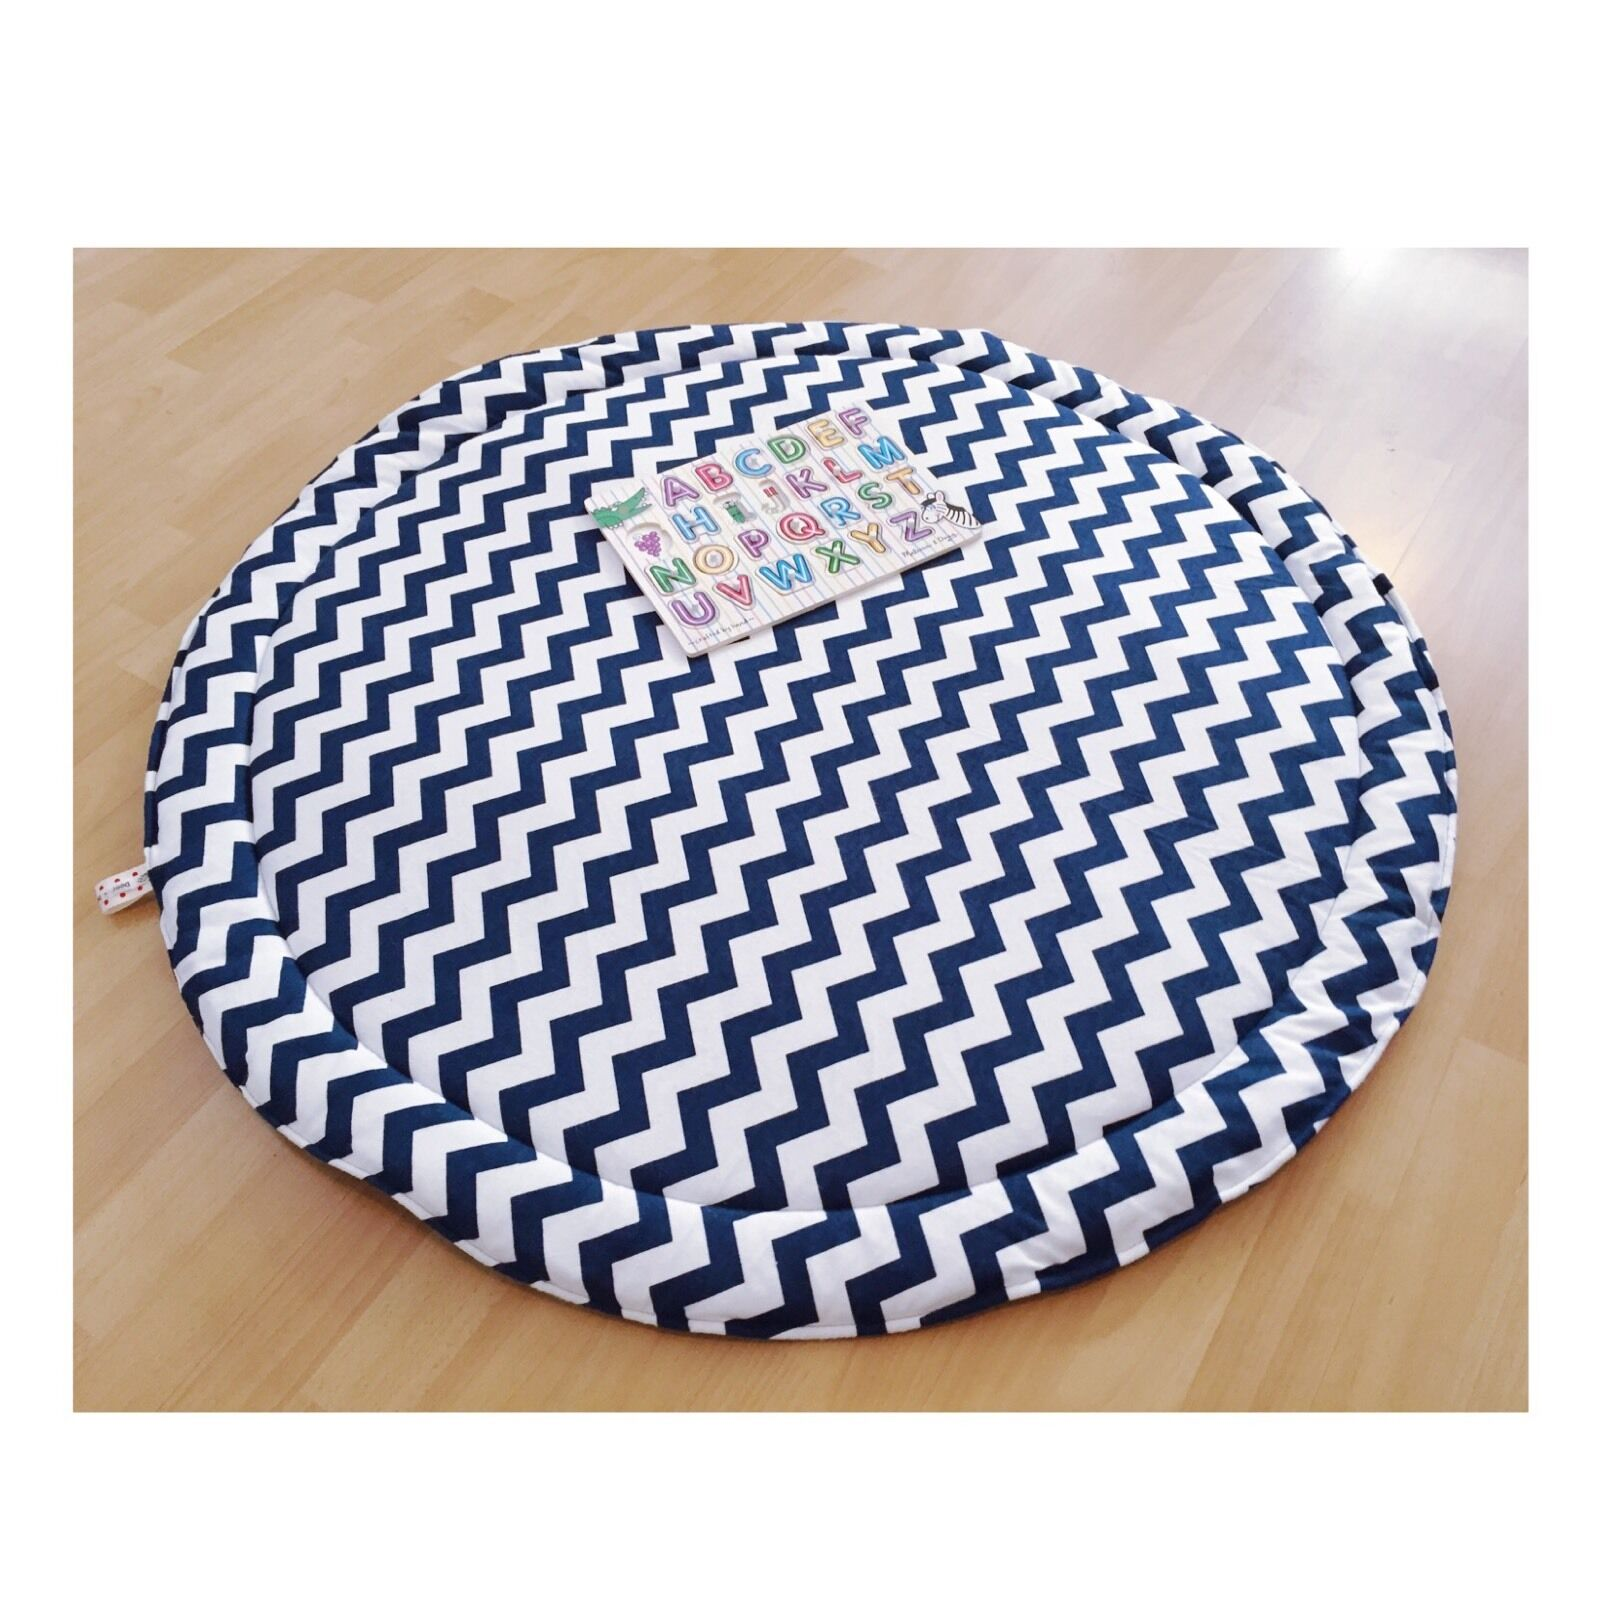 Baby Toy Rug: LUXURIOUS BABY PADDED Round Tummy Time Play Mat Roundies